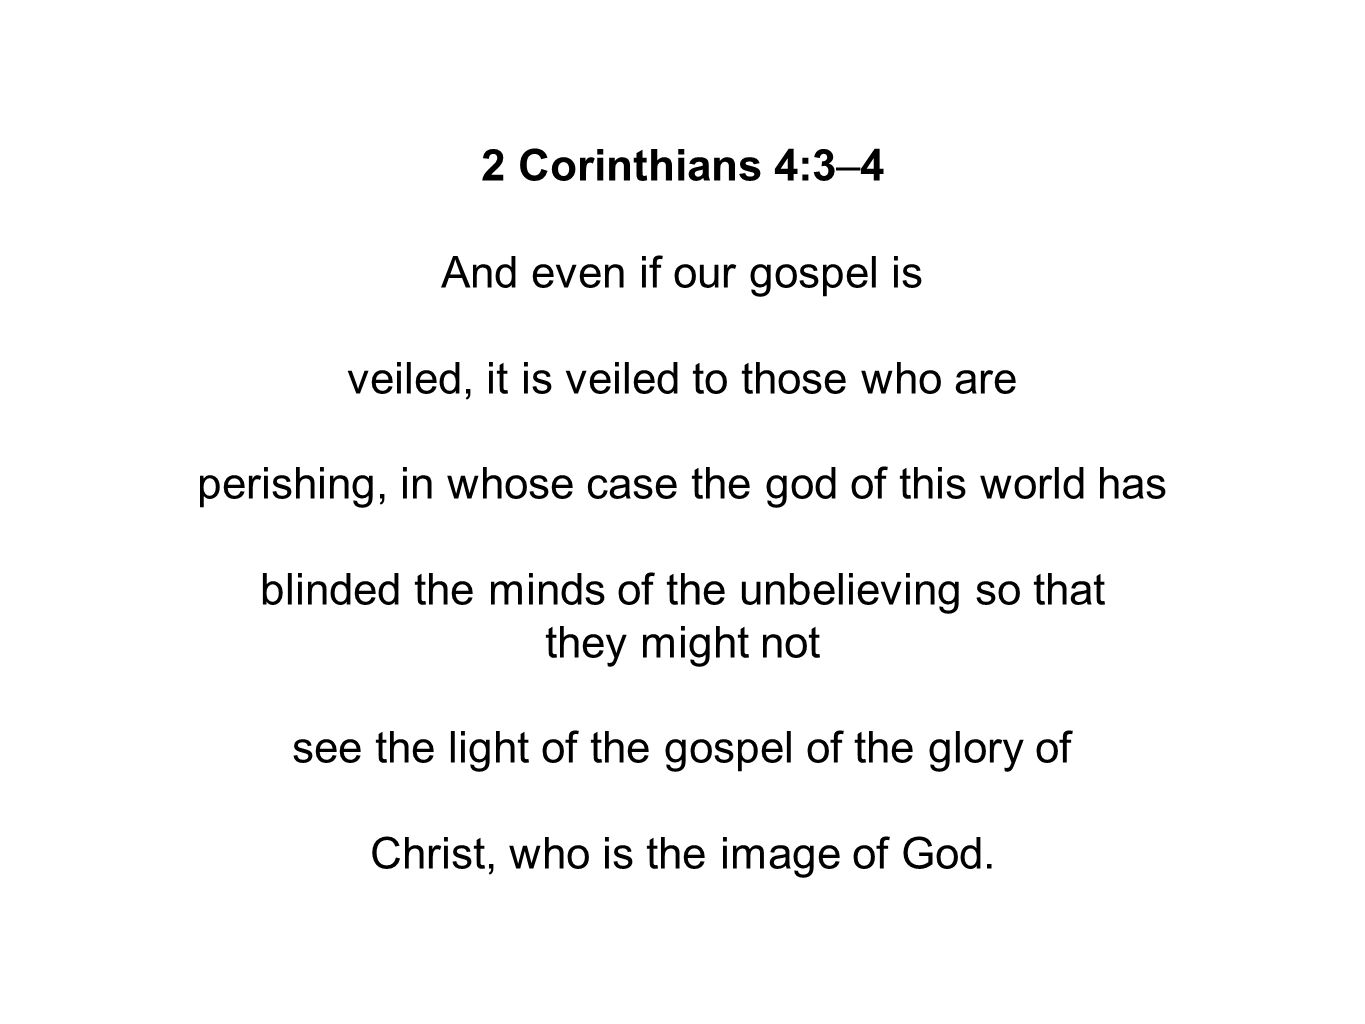 2 Corinthians 4:3–4 And even if our gospel is veiled, it is veiled to those who are perishing, in whose case the god of this world has blinded the minds of the unbelieving so that they might not see the light of the gospel of the glory of Christ, who is the image of God.